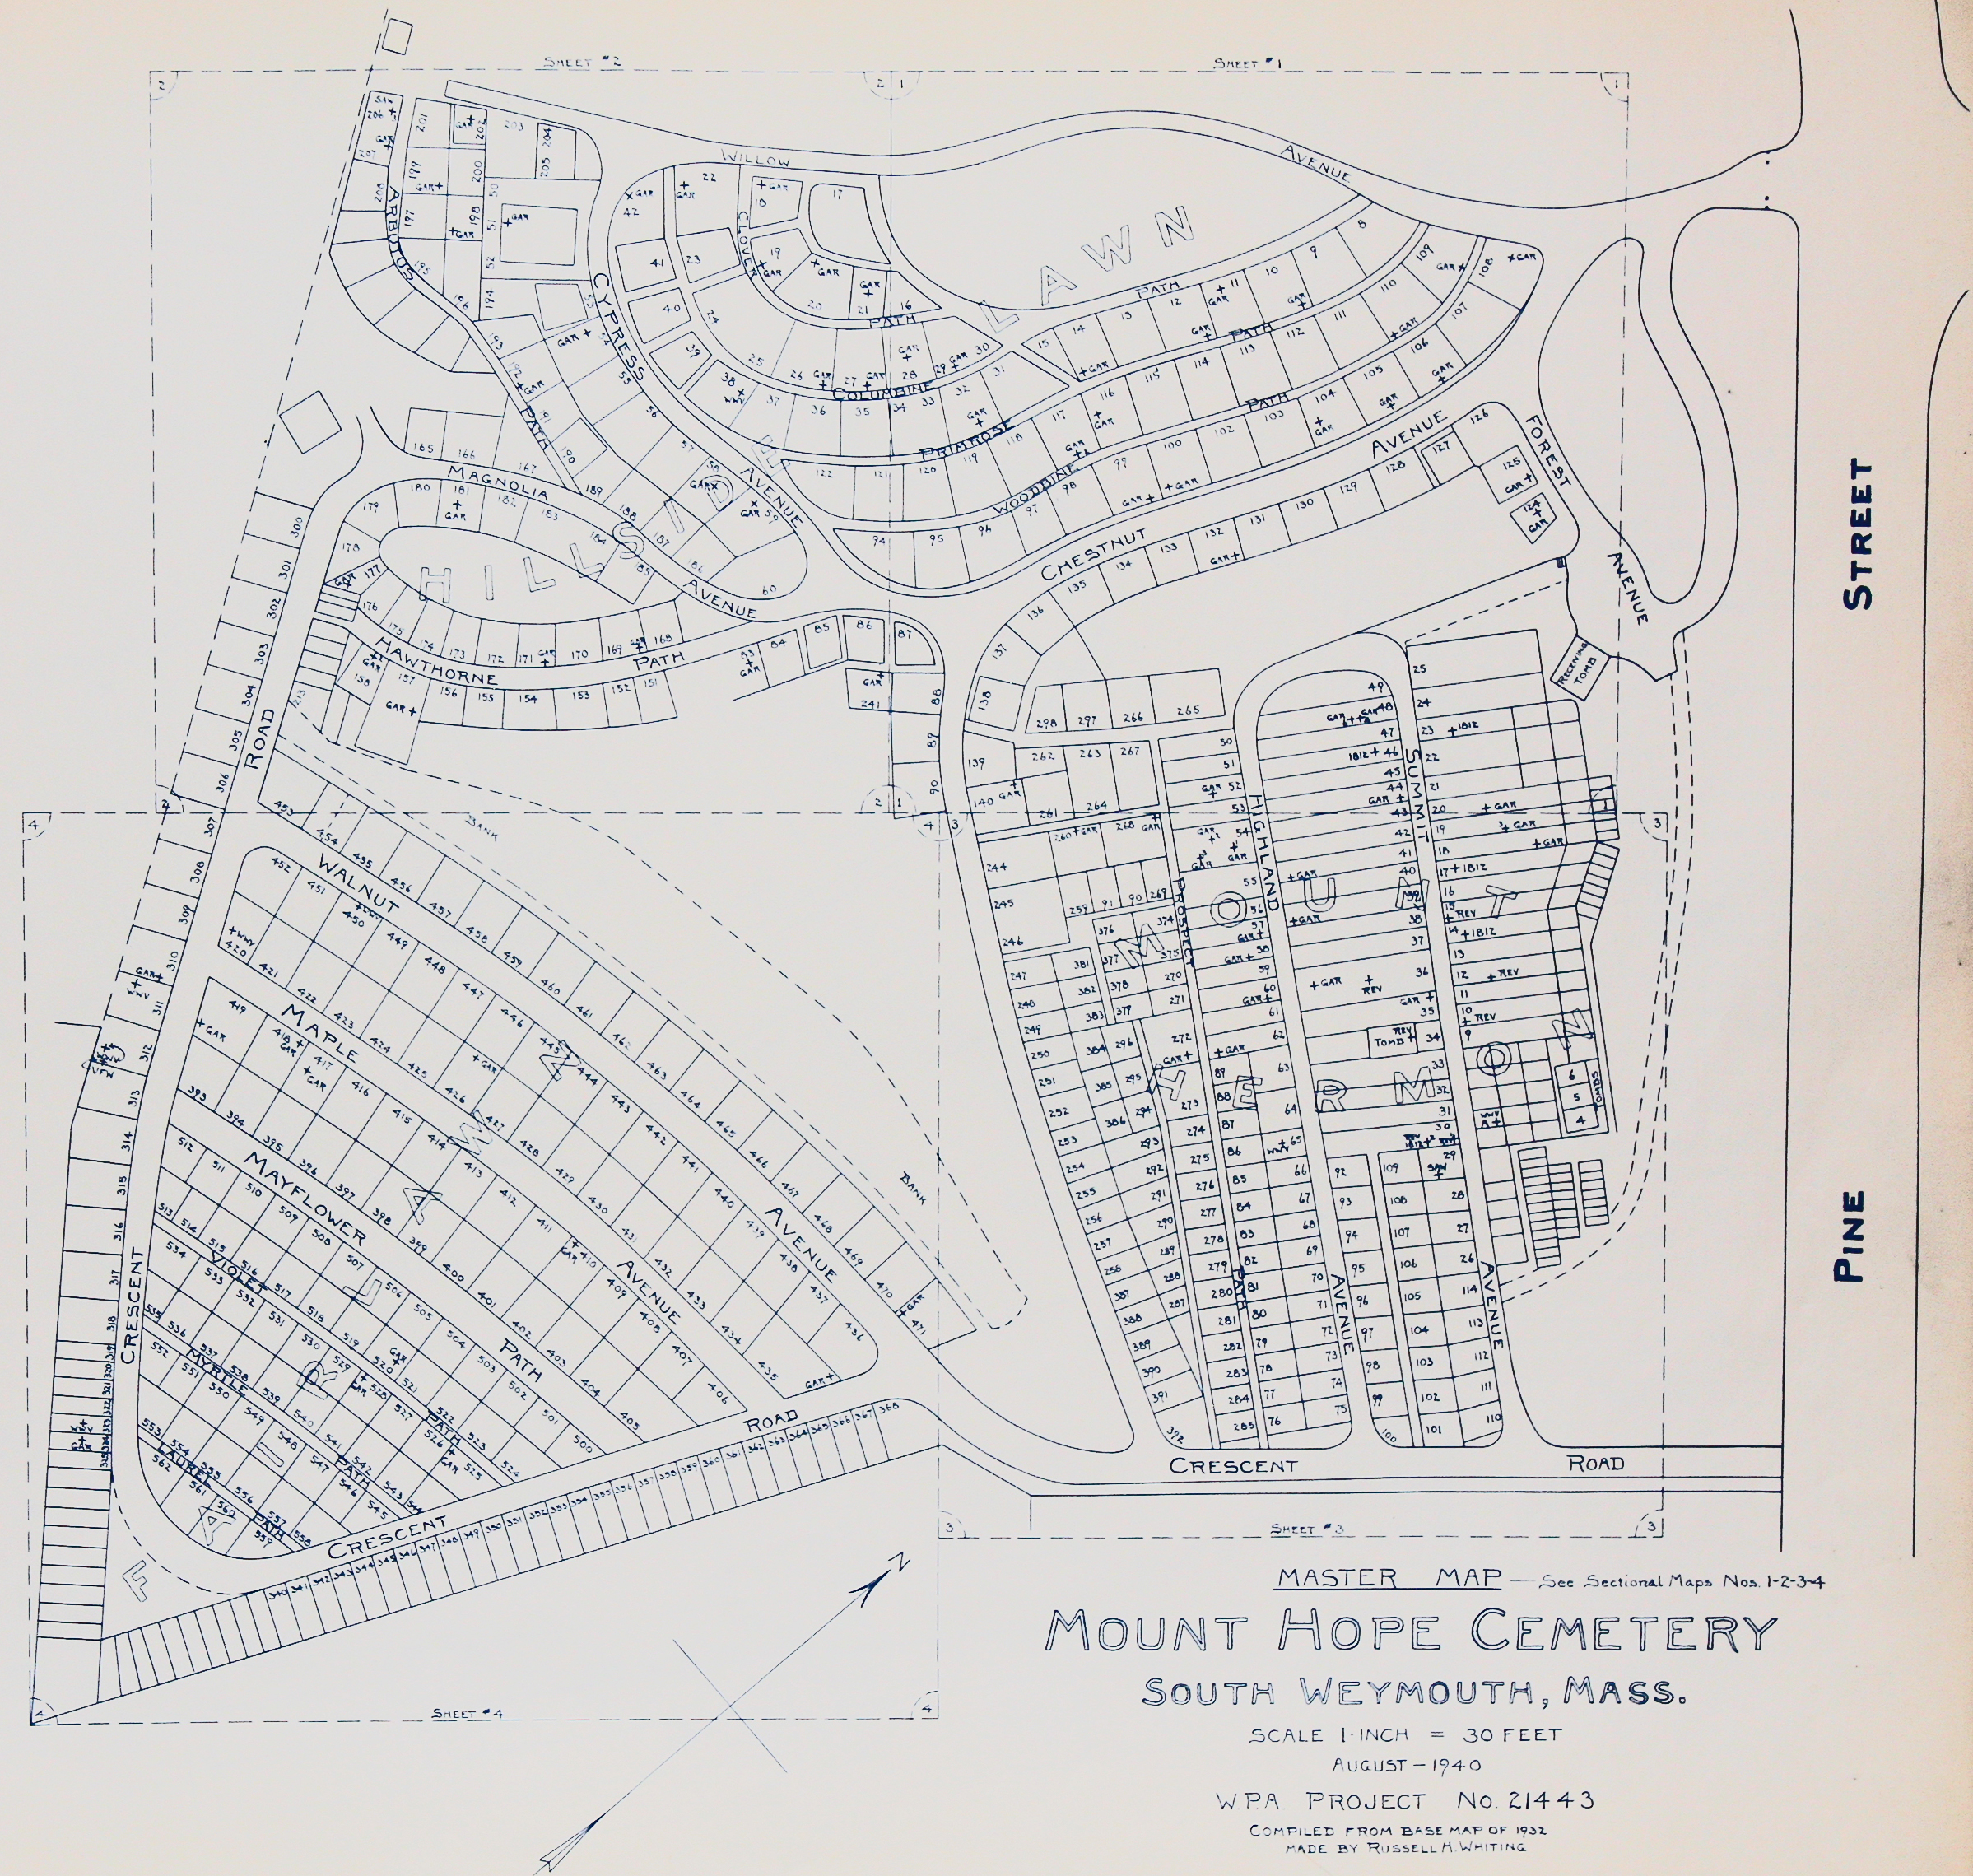 Mount Hope Cemetery master map